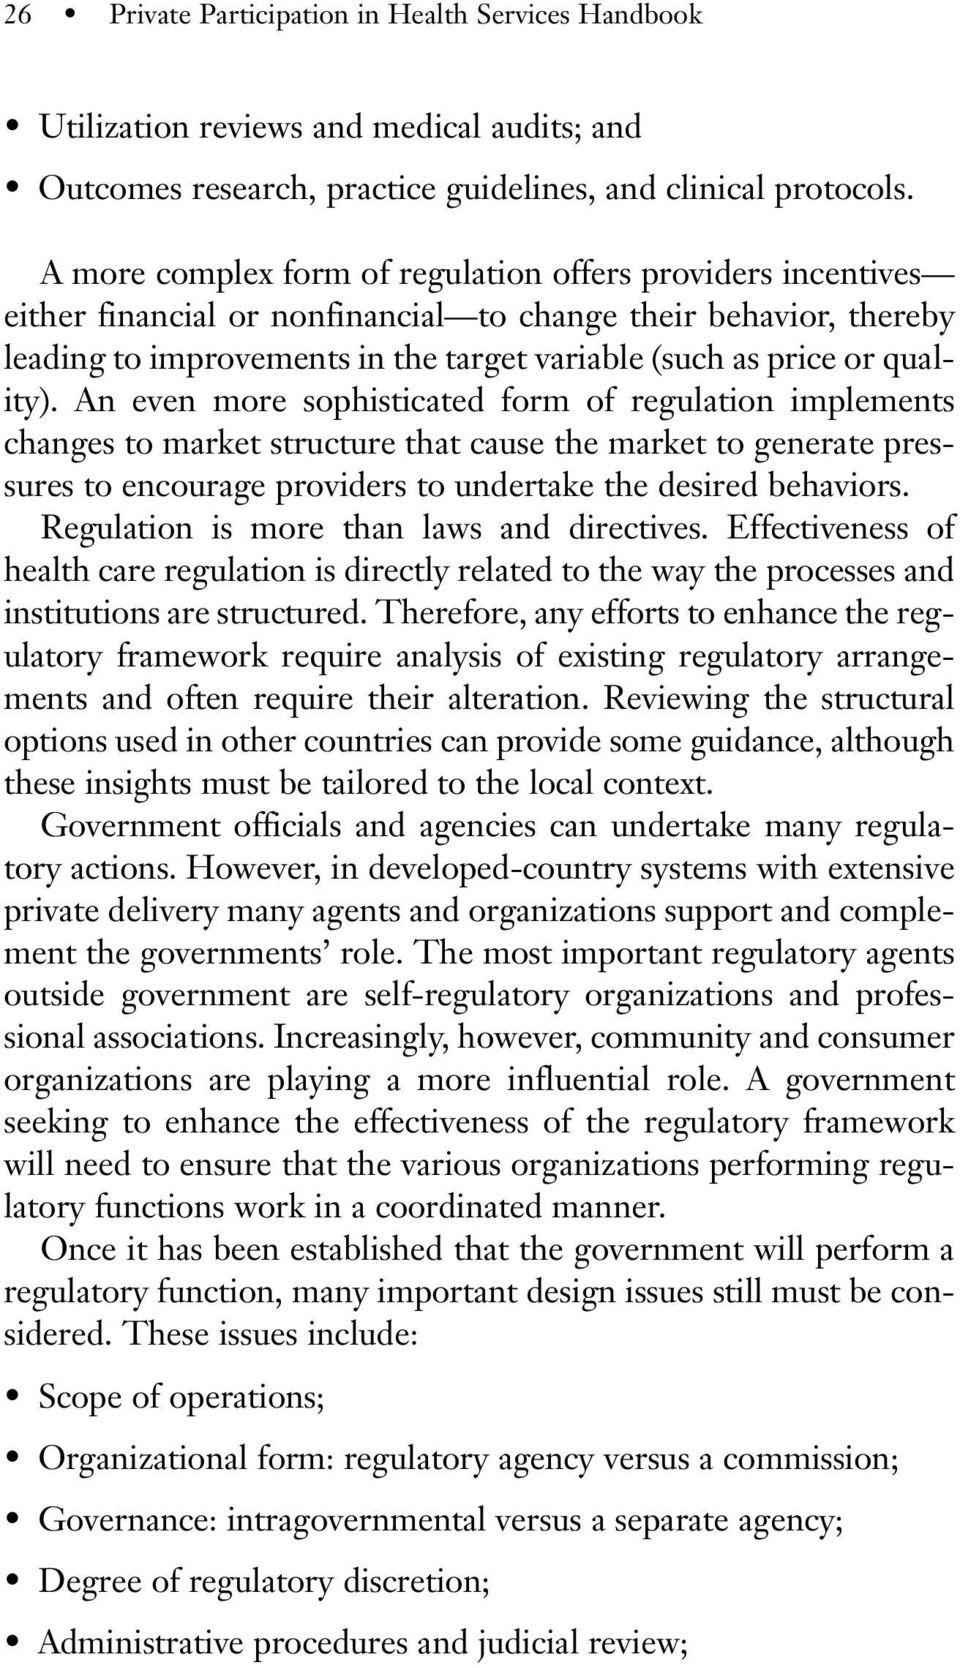 quality). An even more sophisticated form of regulation implements changes to market structure that cause the market to generate pressures to encourage providers to undertake the desired behaviors.